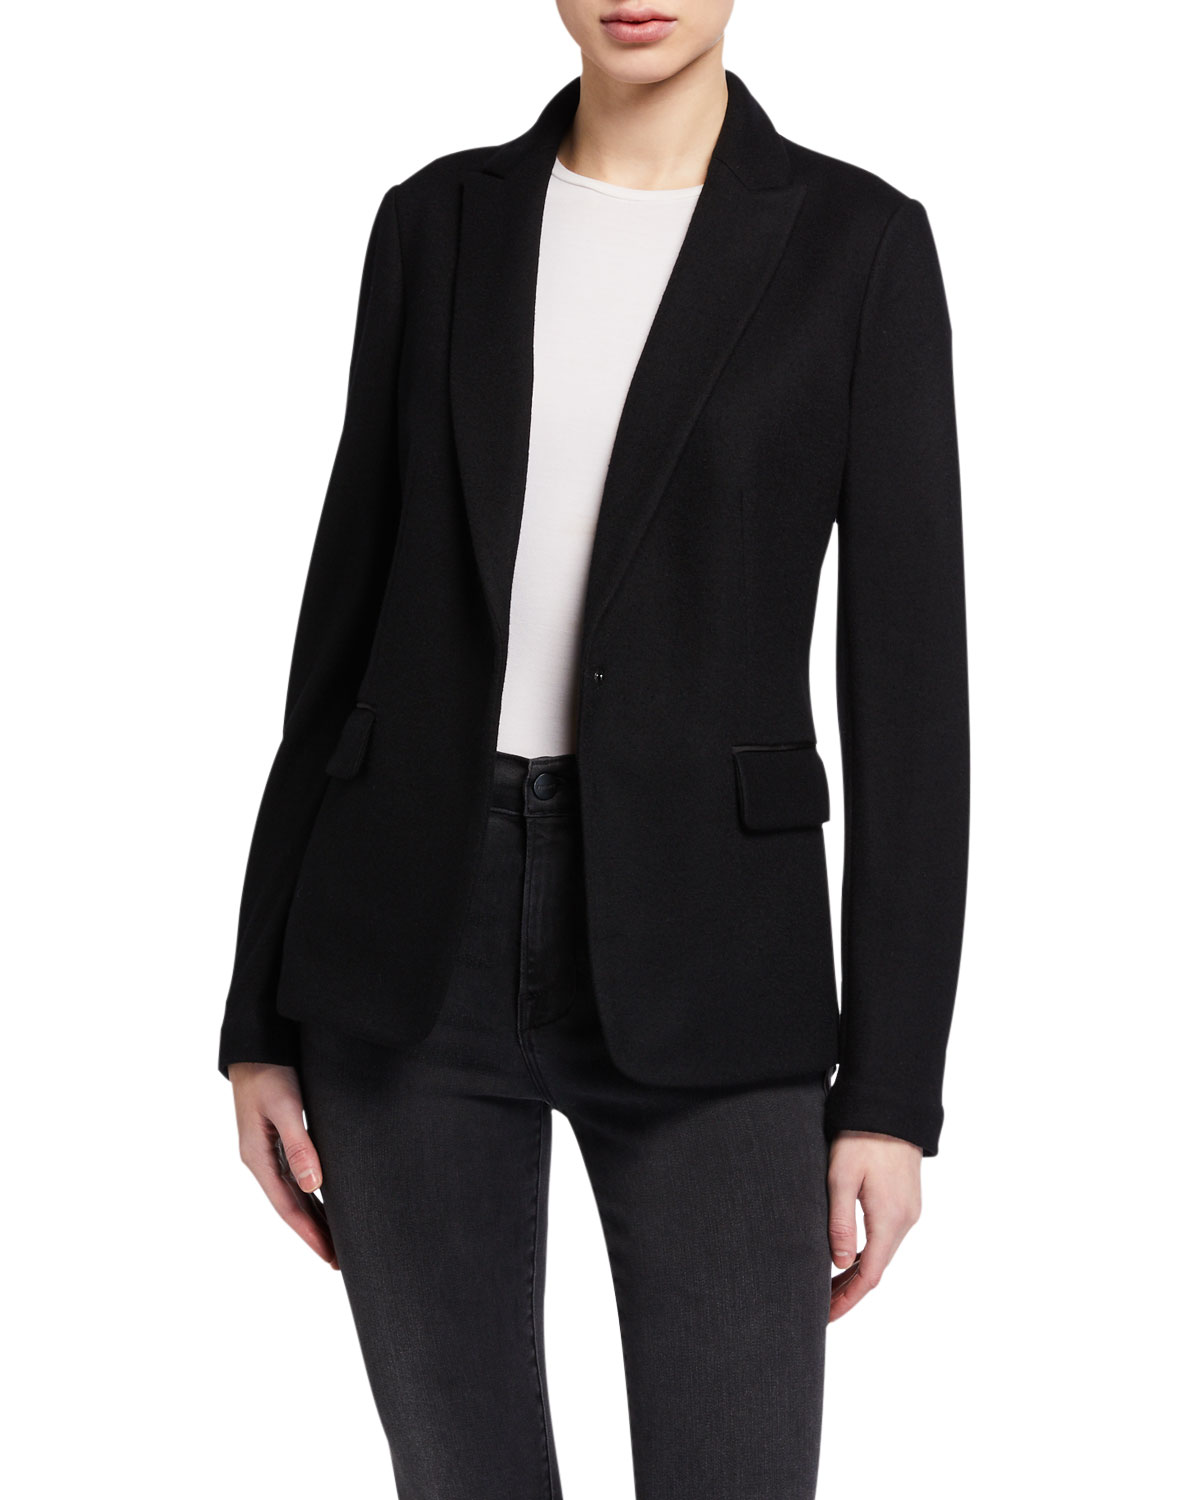 Rag & Bone Lexington Snap-front Wool Blazer In Black